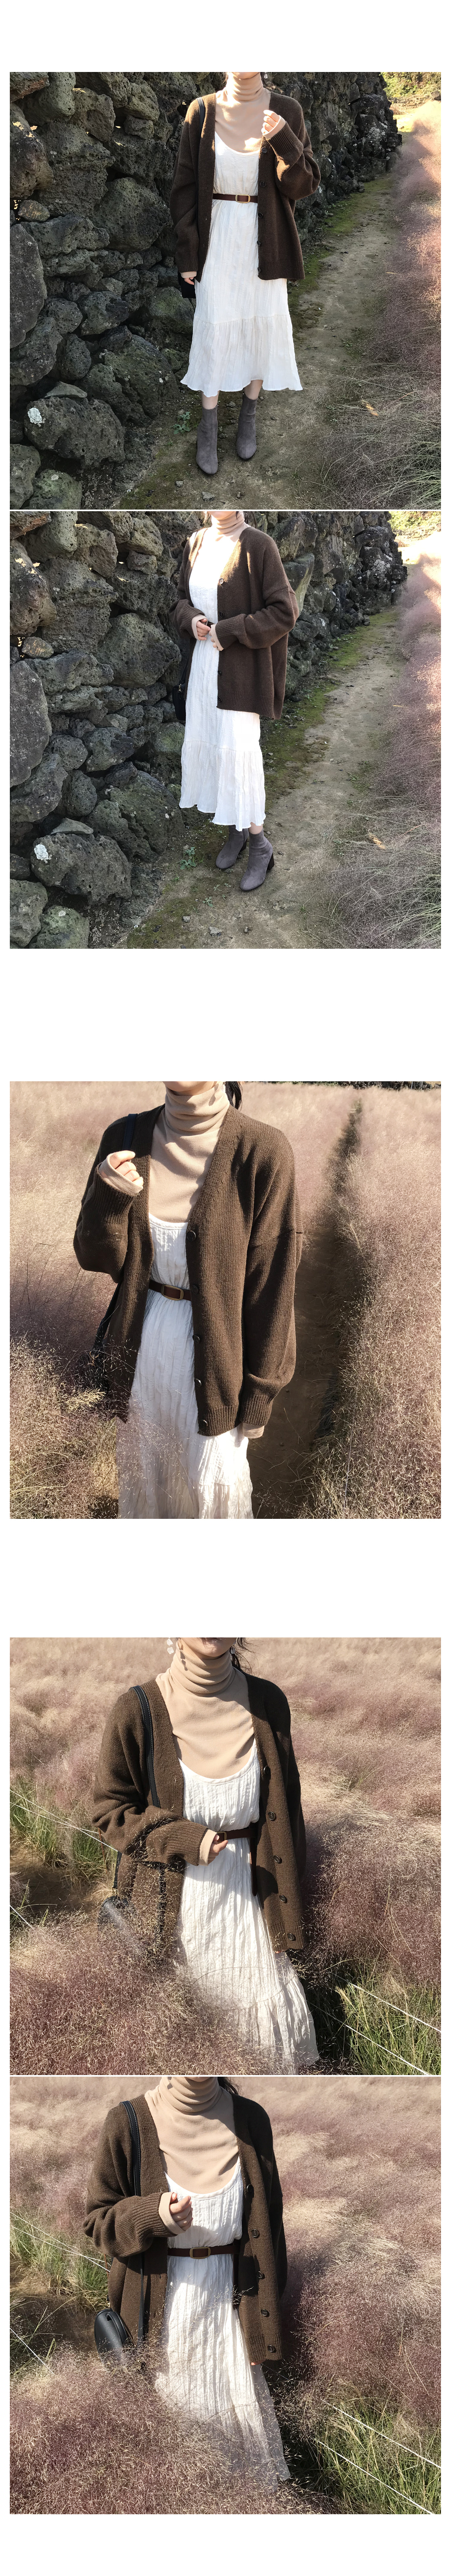 With knit cardigan